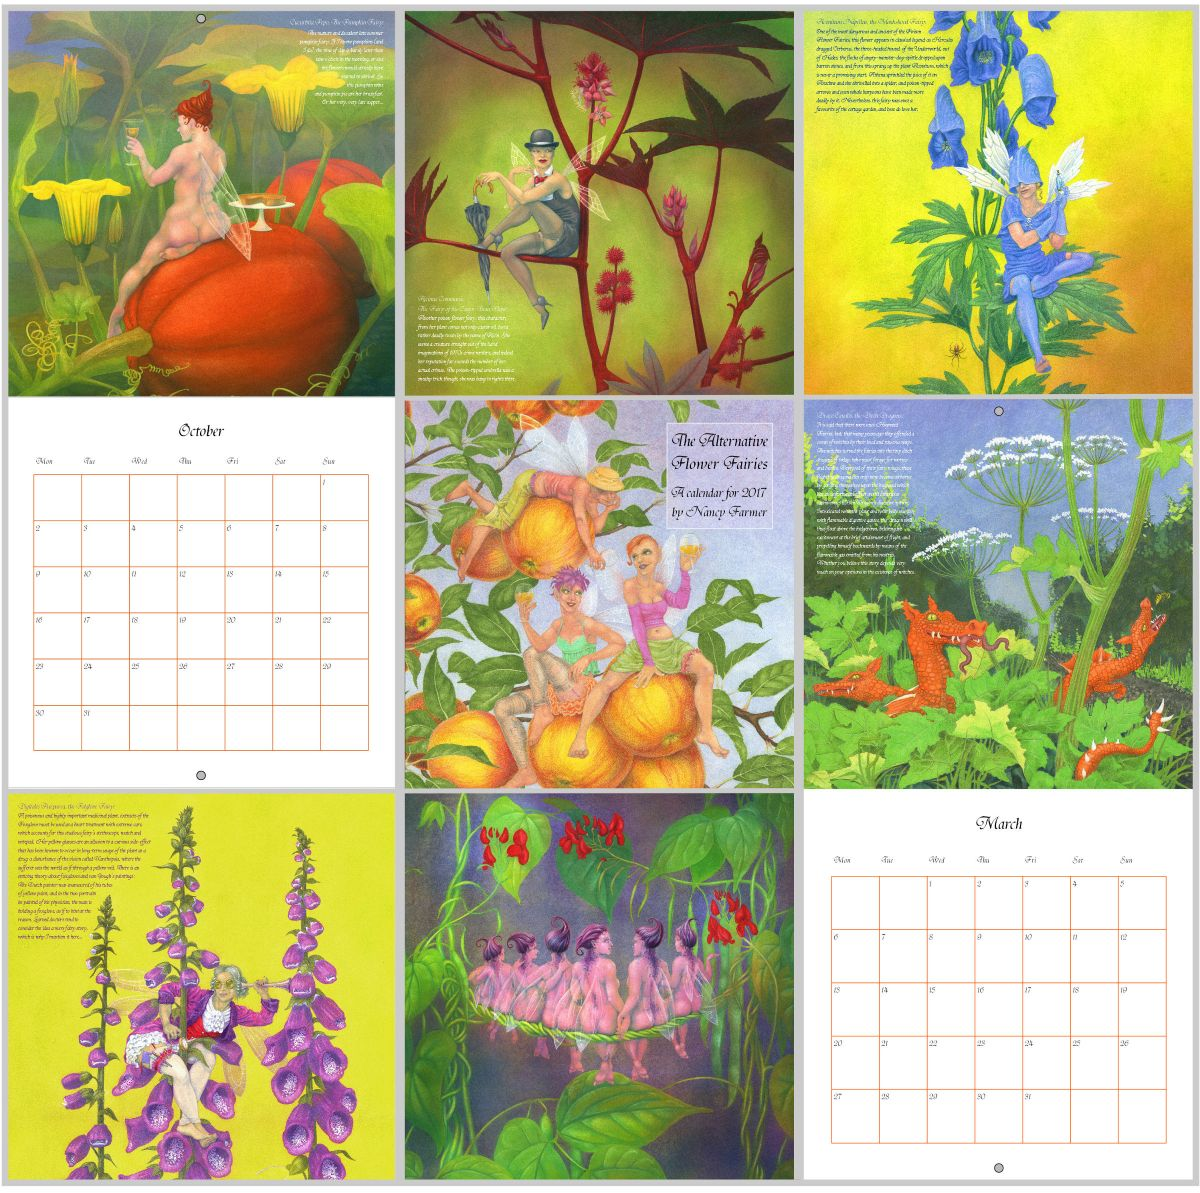 Pages from the Flower Fairies Calendar